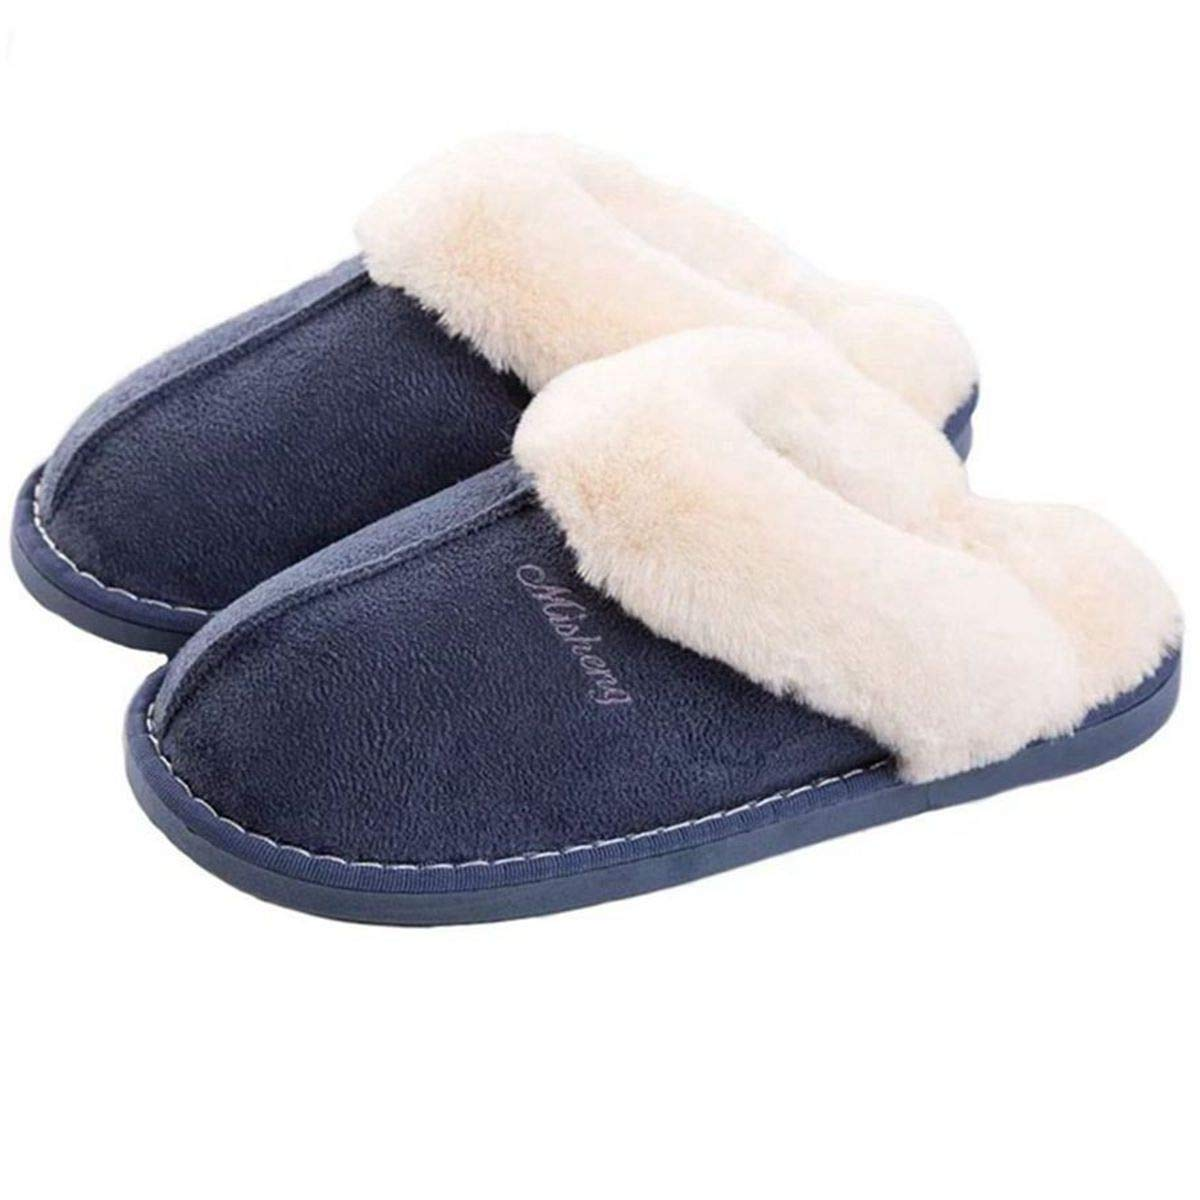 OSHOW Womens Slipper, Fluffy Slip On House Slippers Clog Soft Indoor Outdoor Slipper for Winter by OSHOW